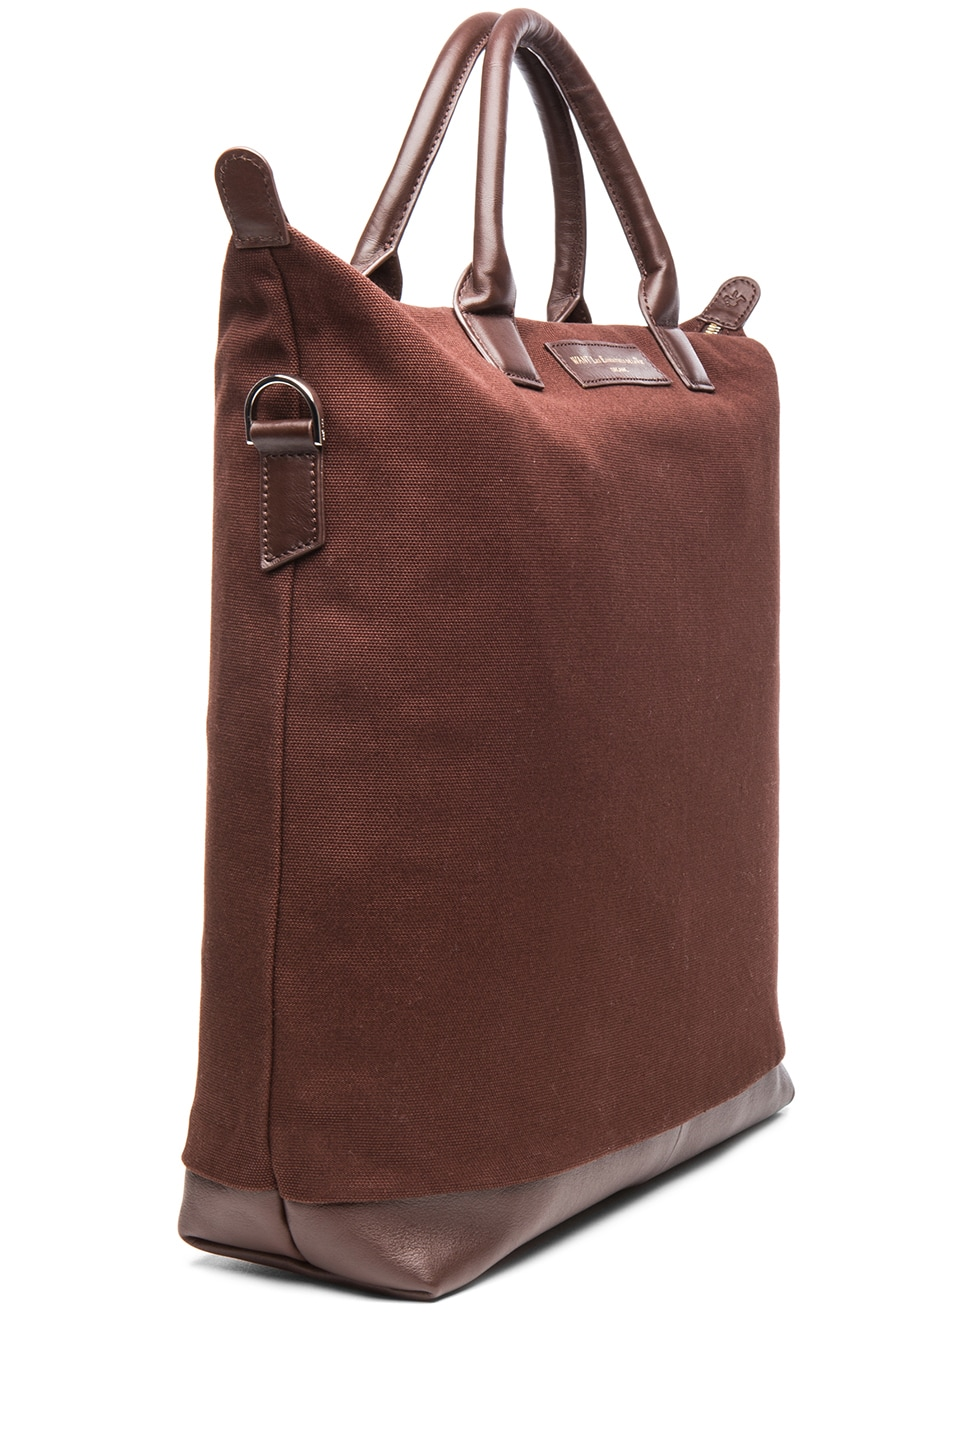 Image 3 of Want Les Essentiels De La Vie O'Hare Cotton Shopper Tote in Mountain & Cocoa